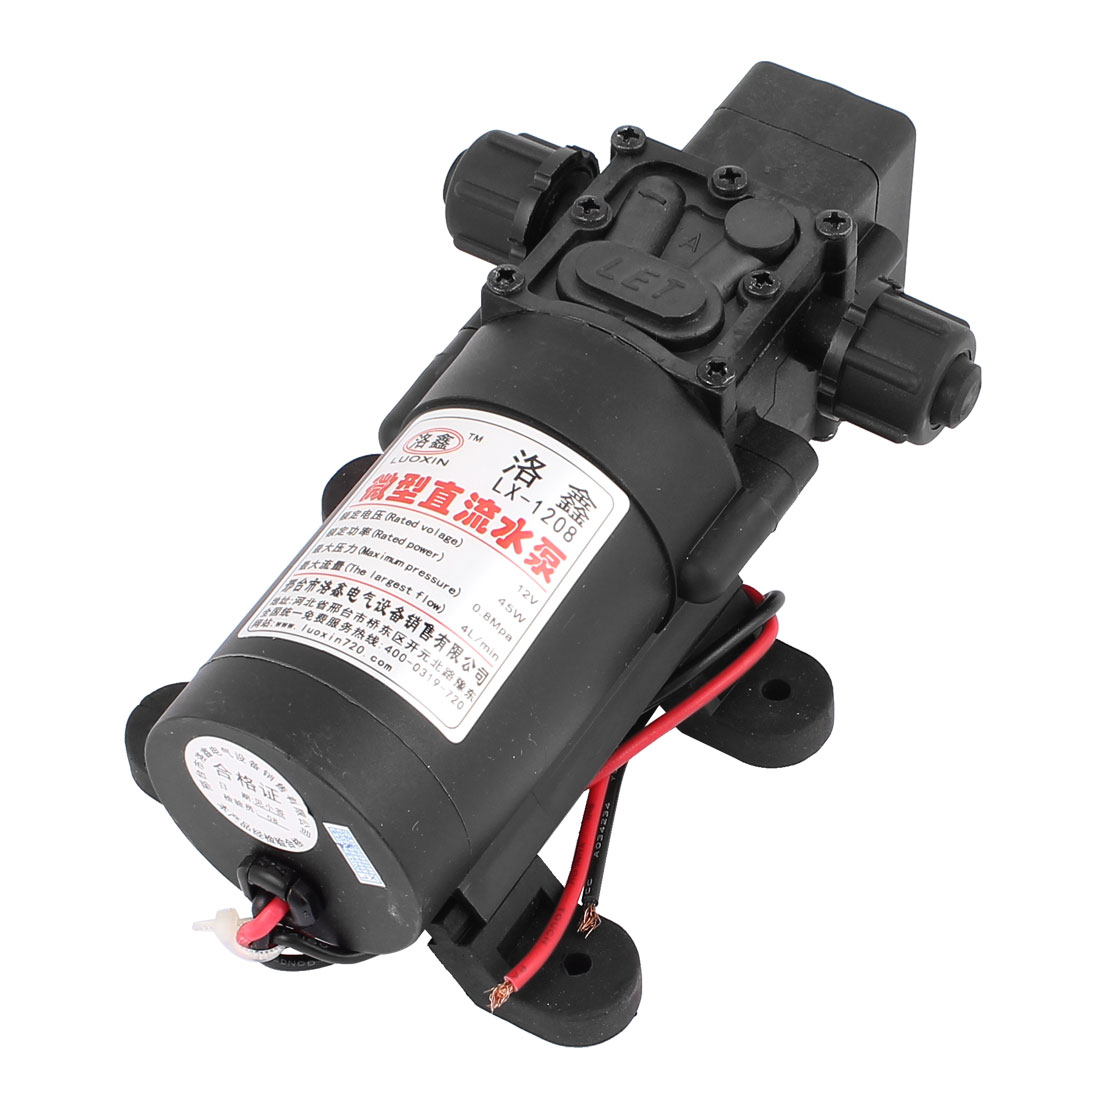 DC 12V 45W Micro Motor Pump 10mm Thread Outlet Inlet Diaphragm Pump